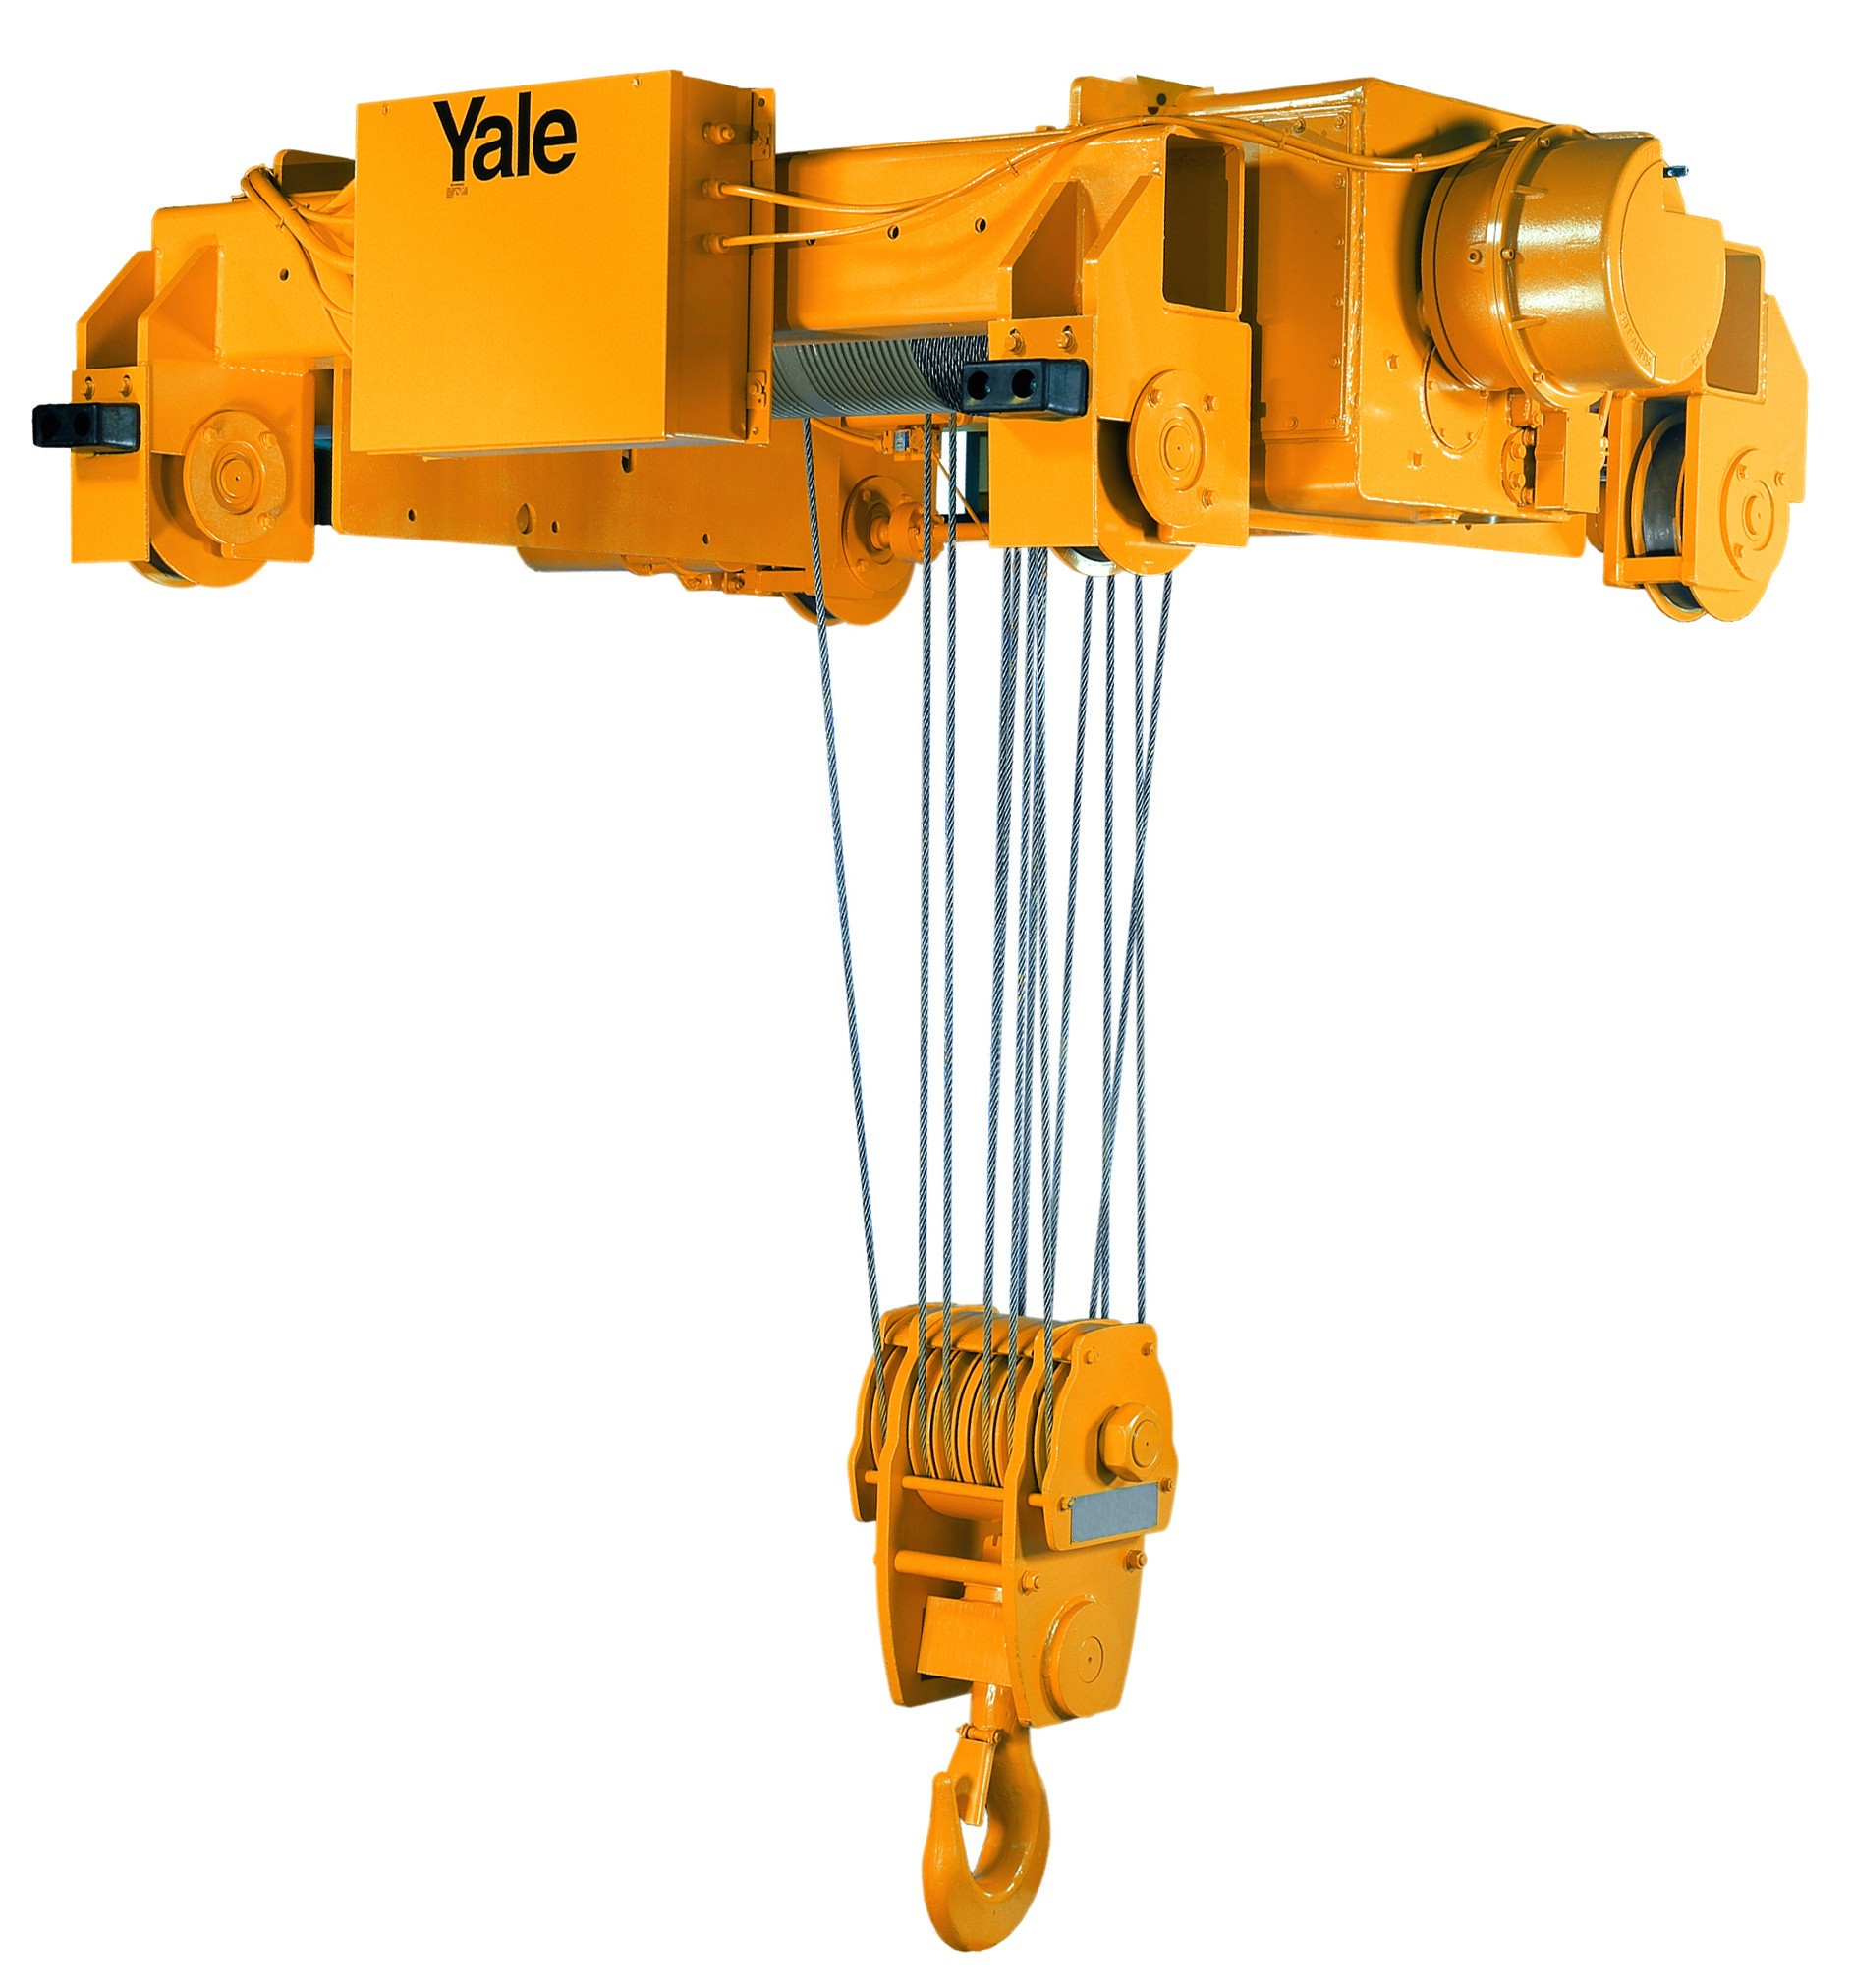 YALE - Cable King 25 Ton Electric Wire Rope Hoist (12fpm & 126' Lift Single Reeve)